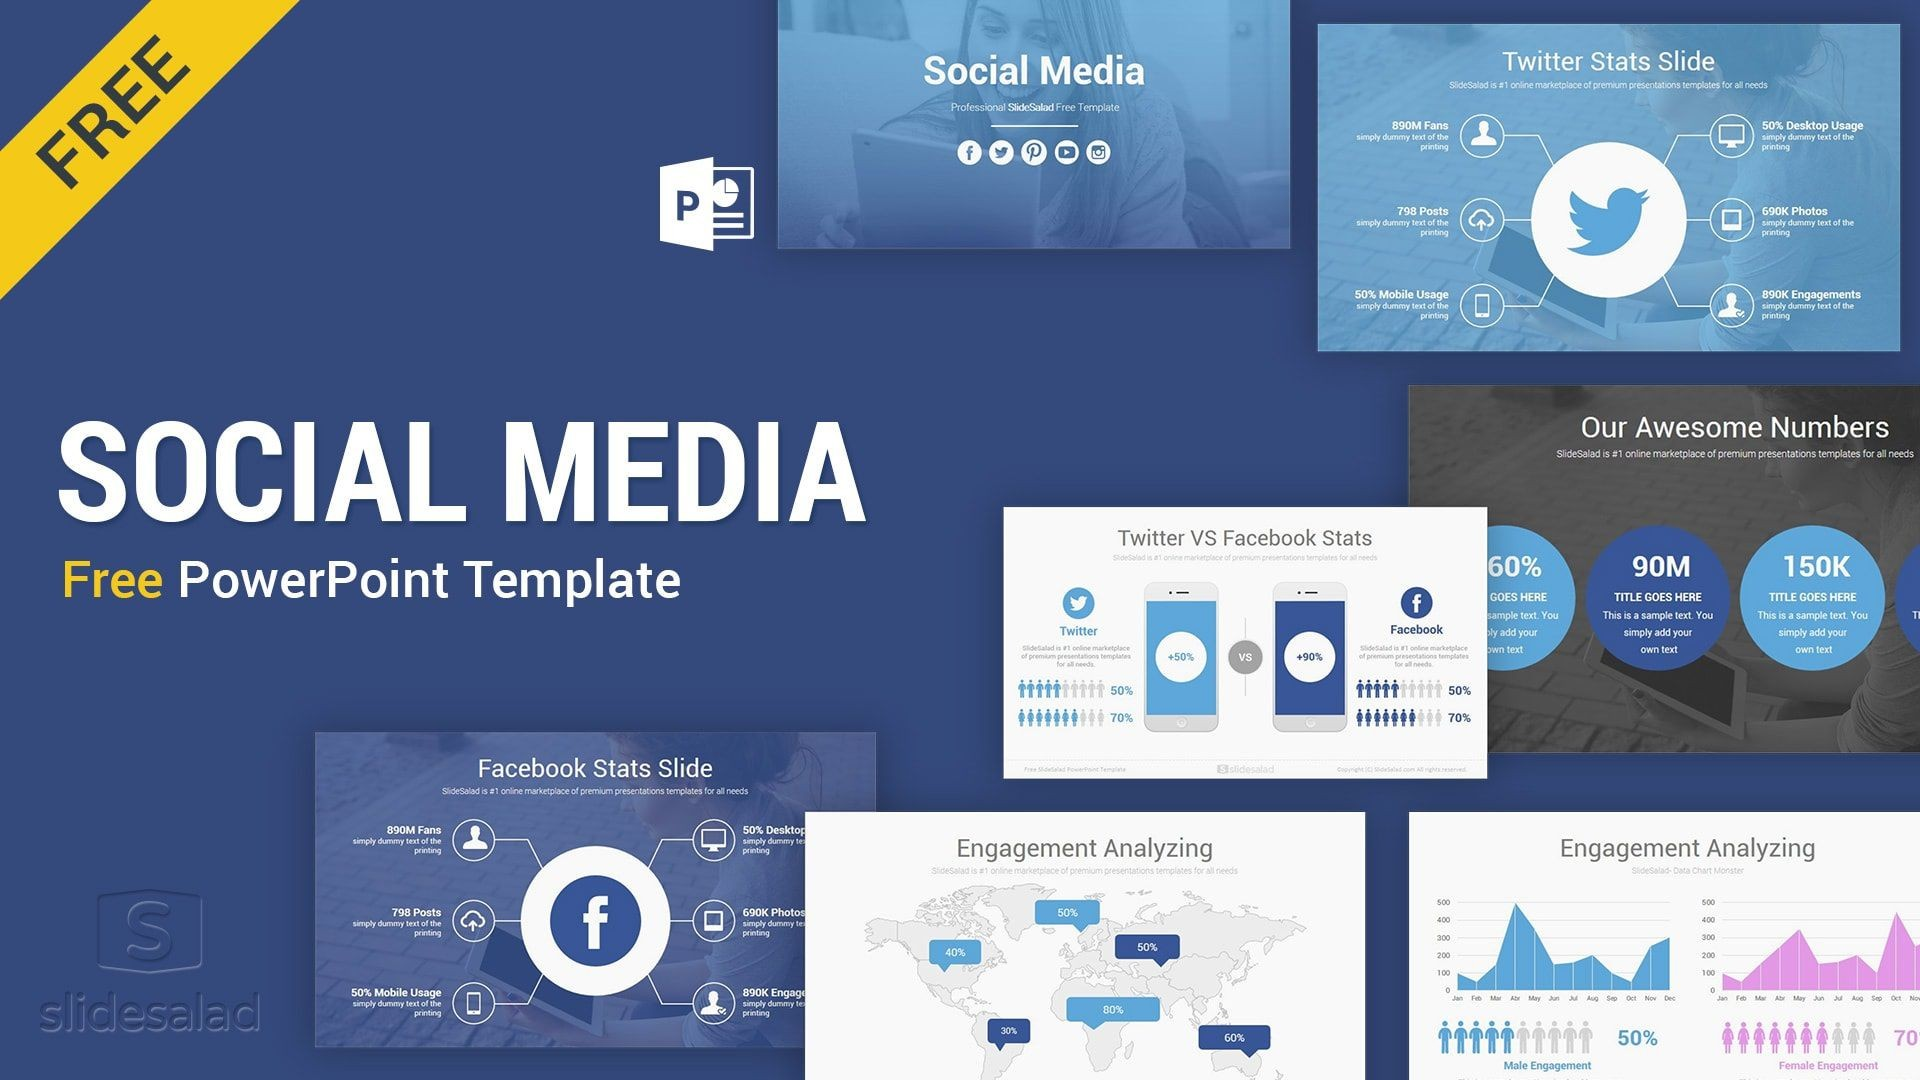 008 Formidable Social Media Template Free Download High Definition  Lower Third Cs1920